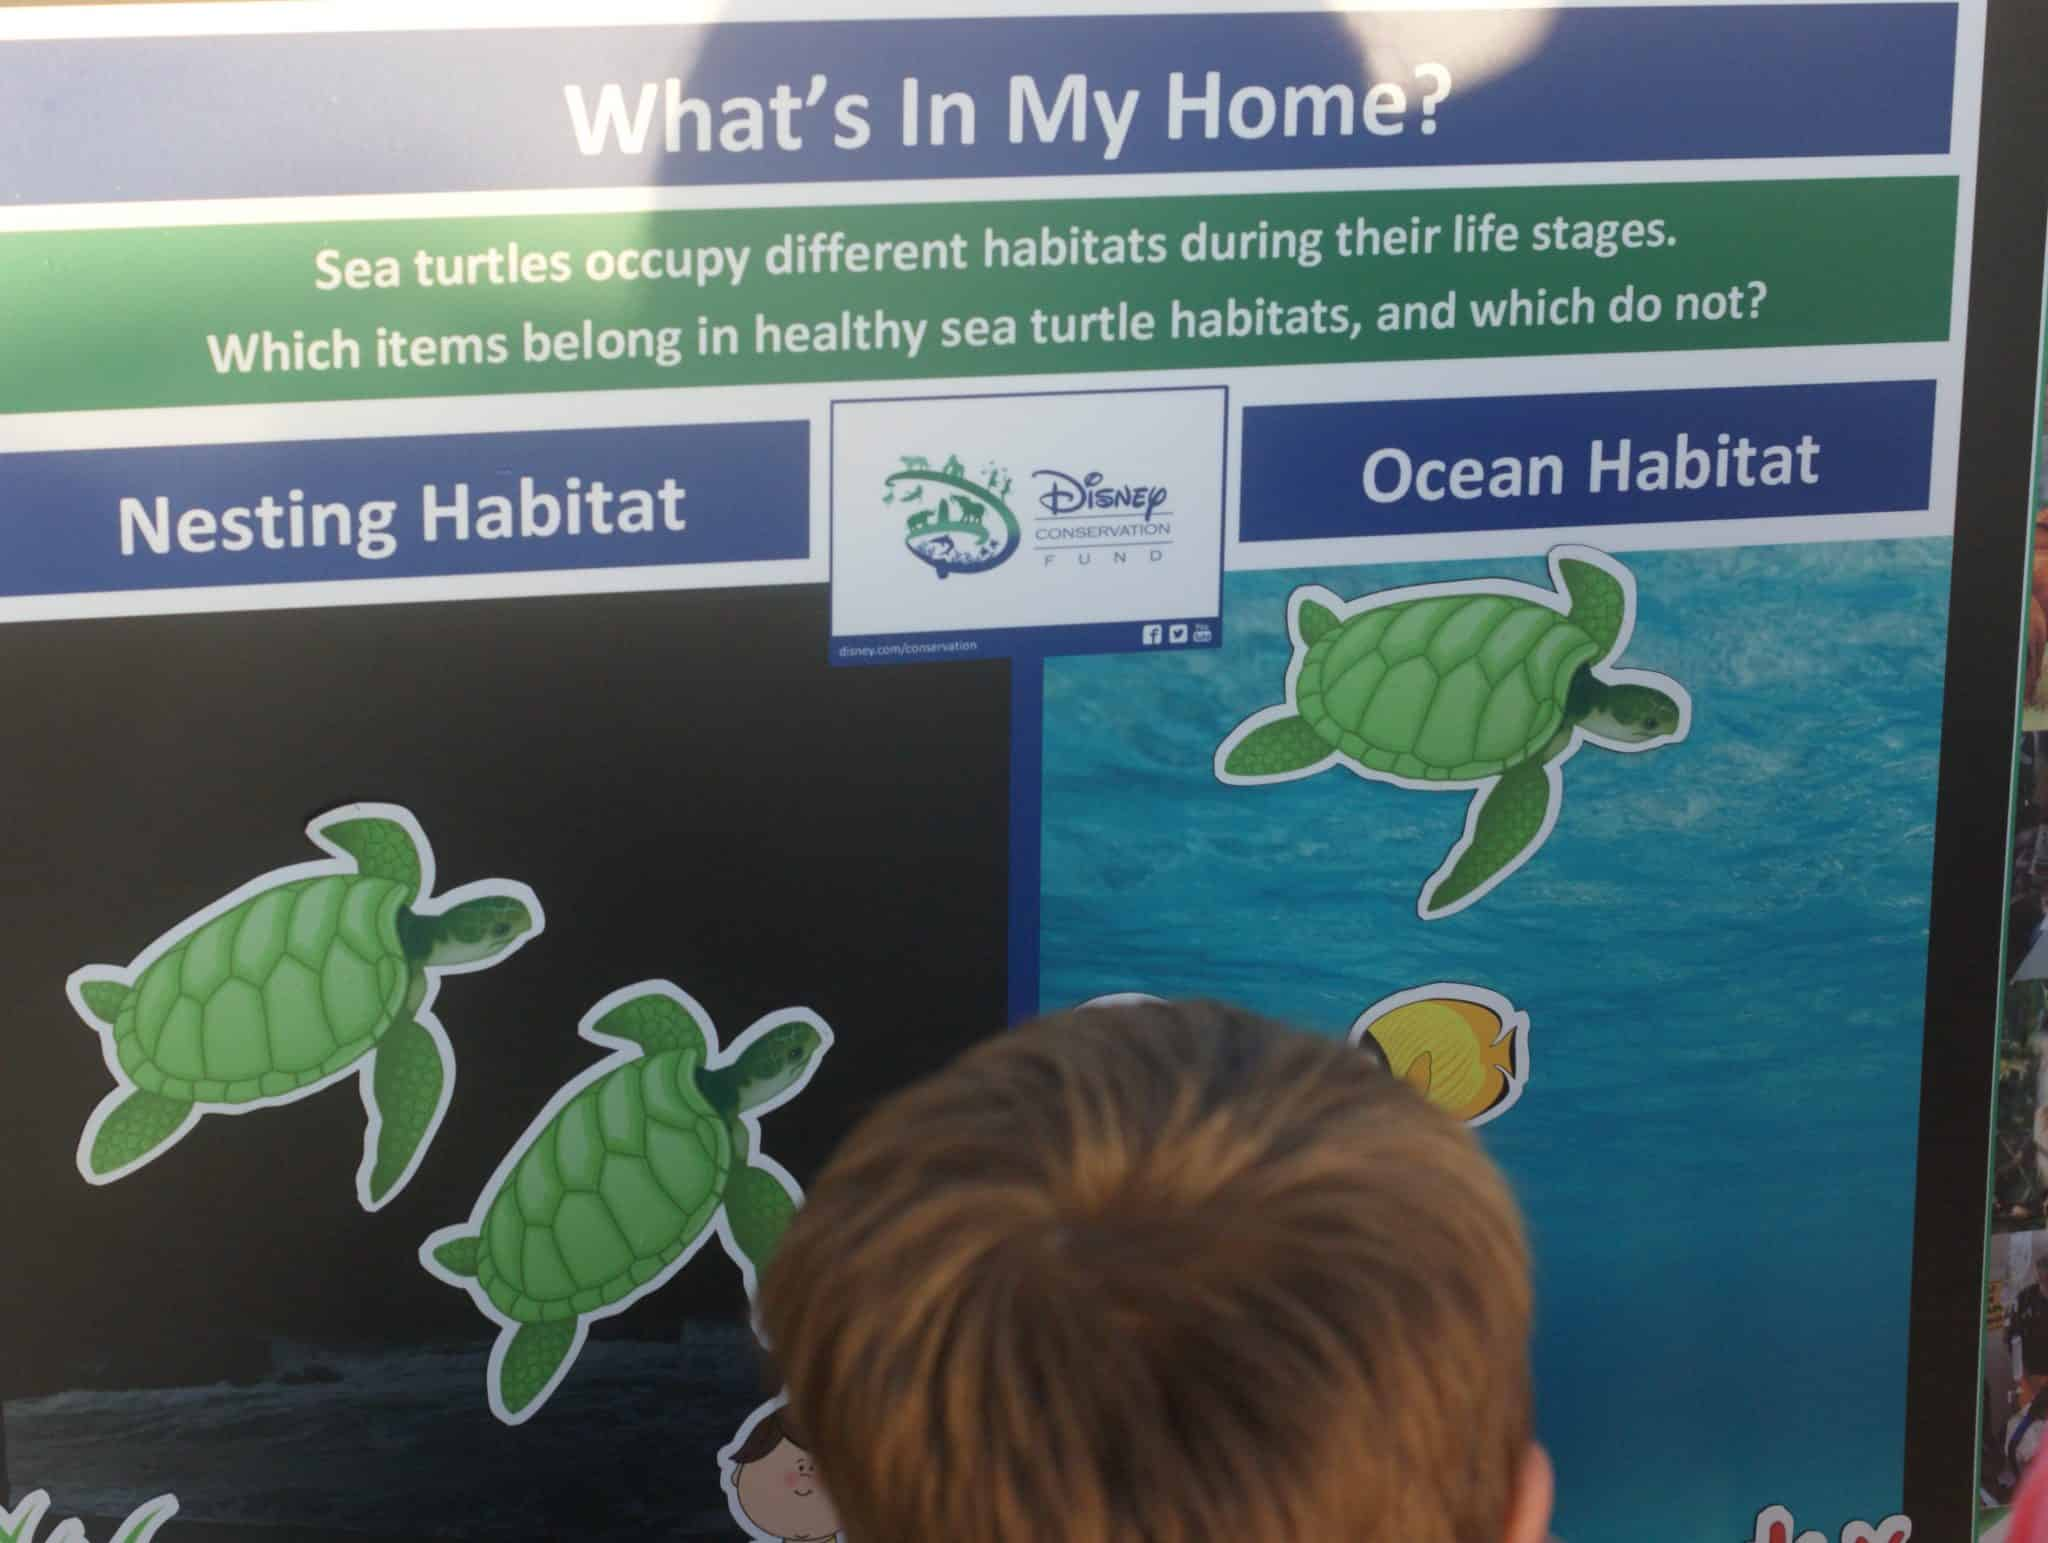 What we learned at the Tour De Turtles at Disney's Vero Beach Resort - What's in My Home?